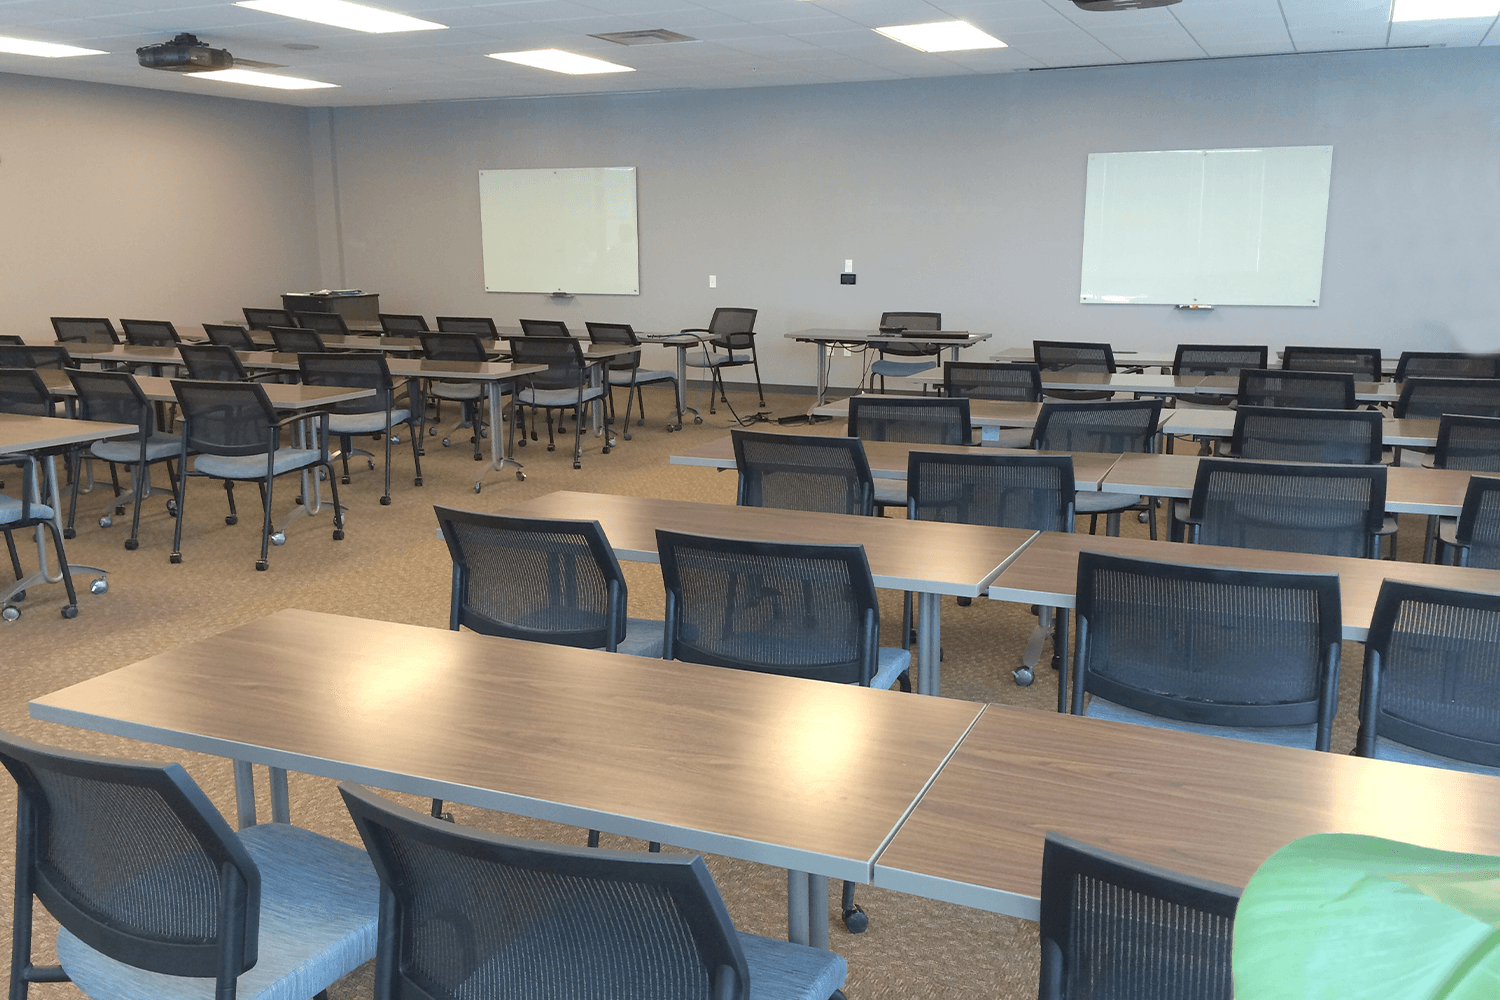 rows of desks and desk chairs